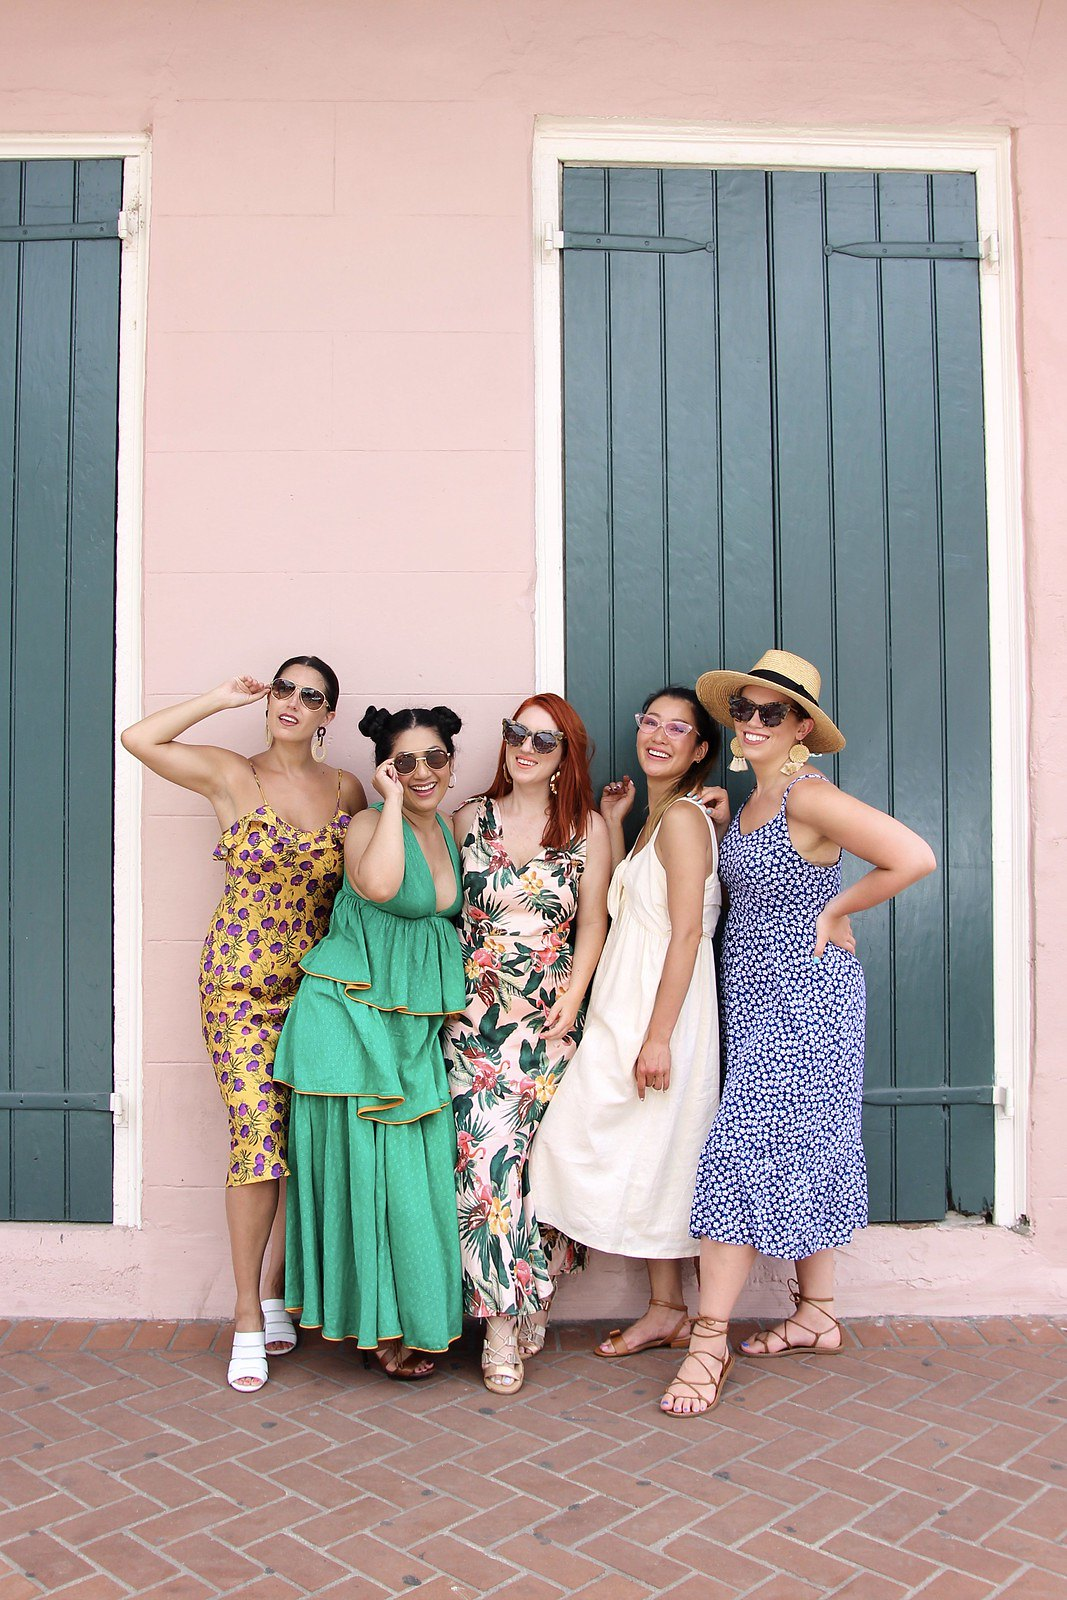 Girls New Orleans Trip | Colorful NOLA Buildings | Summer Outfit Inspiration